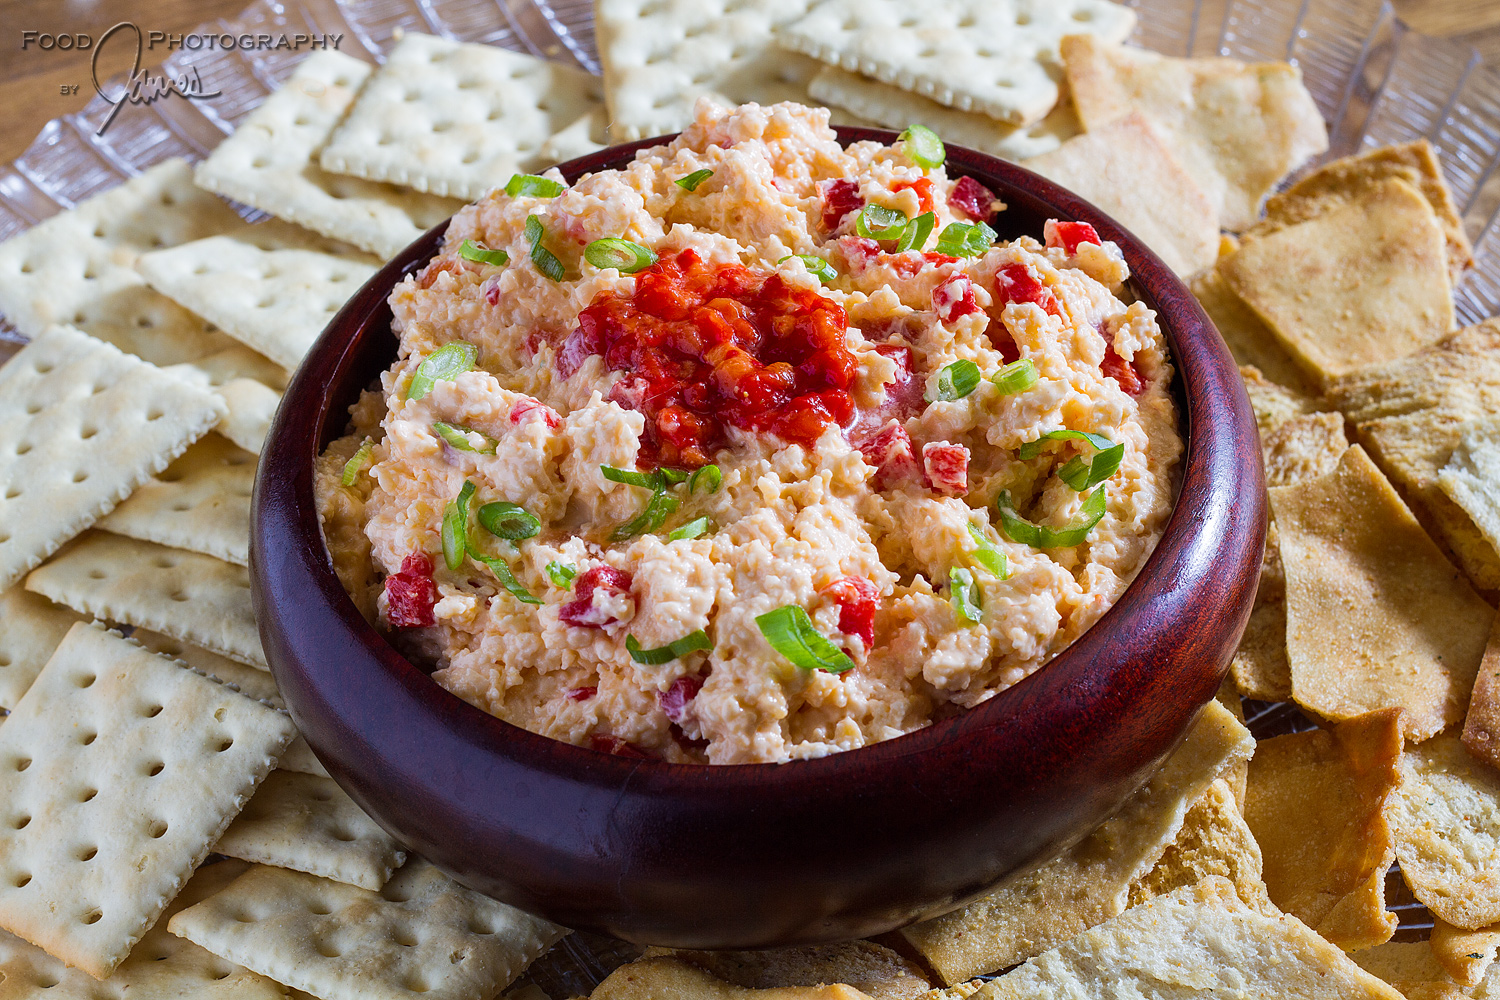 Southern Pimento Cheese   ·3 oz. cream cheese   · 1 cup mayonnaise   ·½ tsp. Worcestershire sauce   ·1 tsp. chopped green onion   ·1⁄8 tsp. cayenne pepper   ·8 oz. extra-sharp white Vermont cheddar cheese, finely grated   ·8 oz. sharp yellow cheddar cheese, finely grated   ·4-oz. jar pimentos, drained and finely diced   ·Hot sauce to taste  Place cream cheese, mayonnaise, Worcestershire sauce, green onion and cayenne in the bowl of a food processor. Process until smooth. Add extra-sharp and sharp cheese and pulse a few times, just until the shredded cheese and mayonnaise mixture is well blended. The mixture should not be completely smooth.  Scrape the cheese mixture into a bowl and stir in the diced pimentos. Add hot sauce to taste, cover and chill for a few hours to allow flavors to blend.